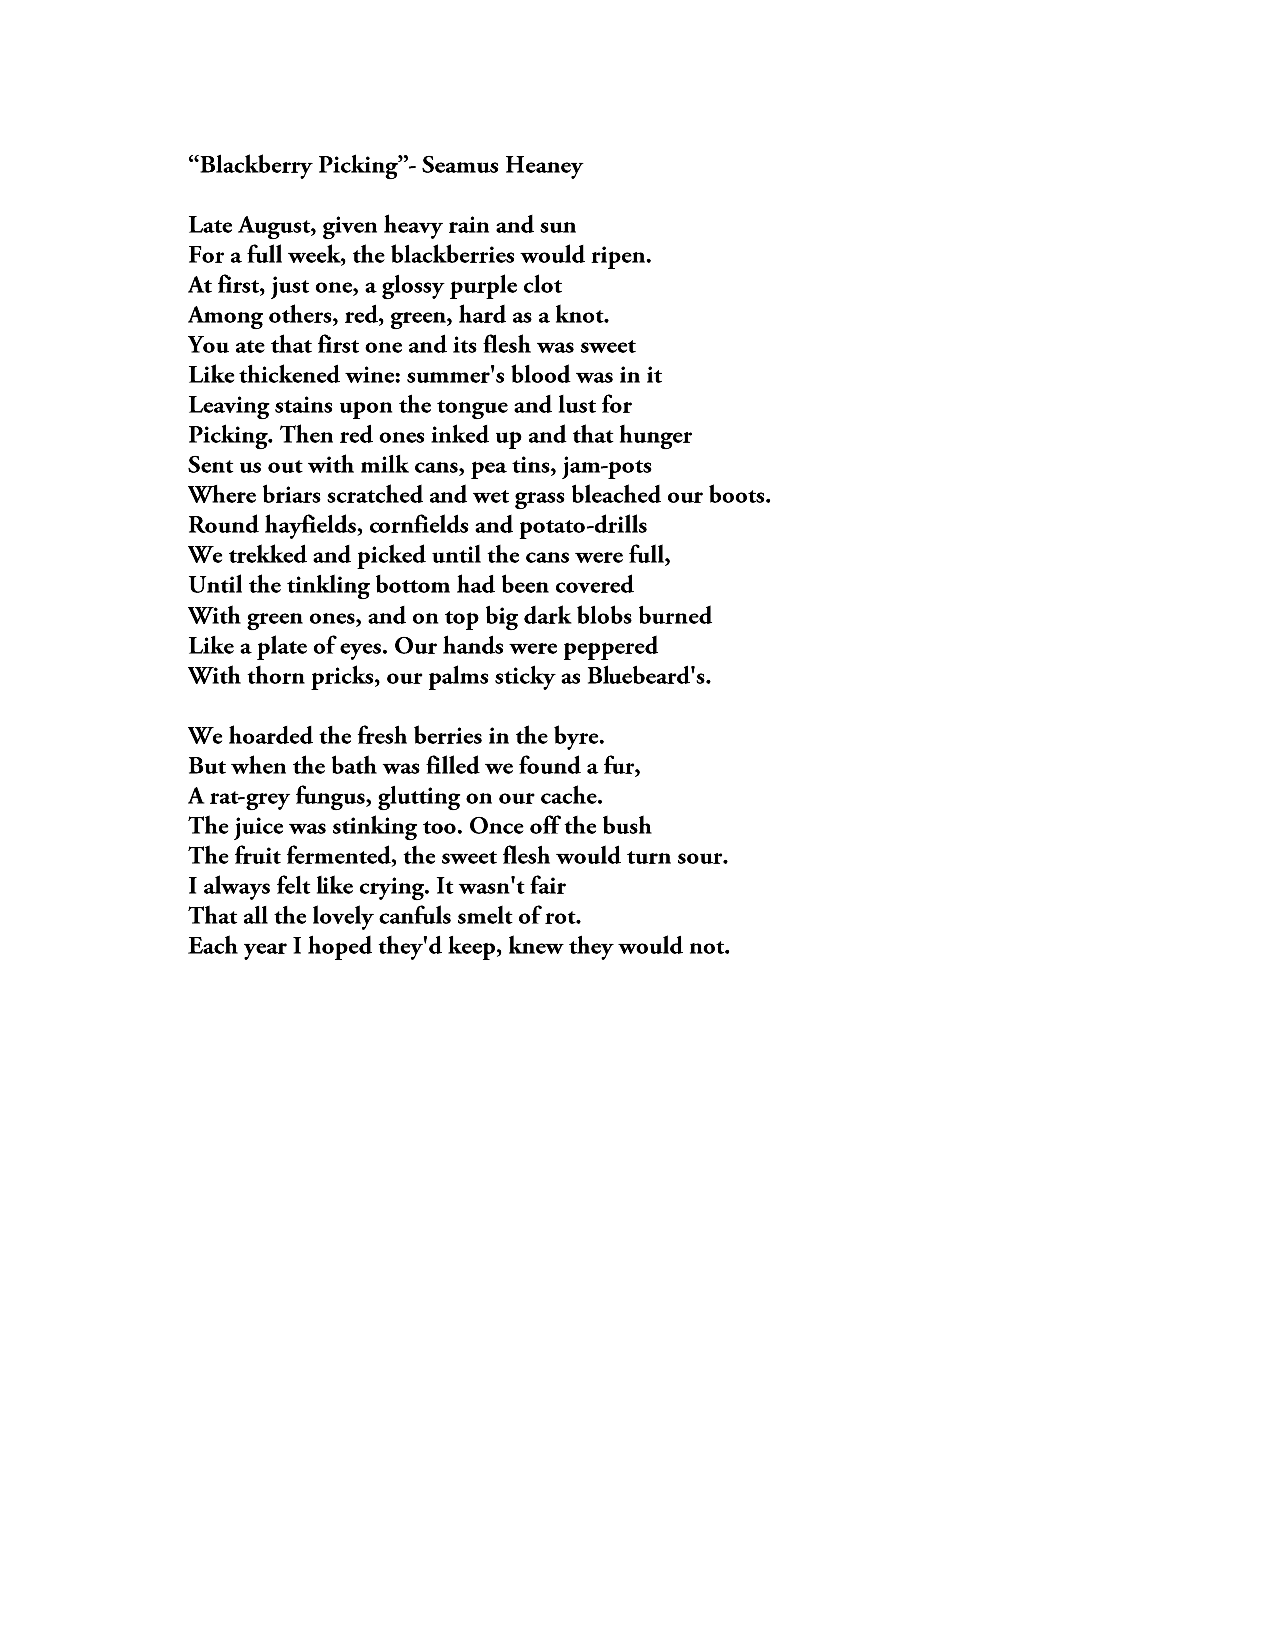 blackberry picking by seamus heaney essay 91 121 113 106 blackberry picking by seamus heaney essay